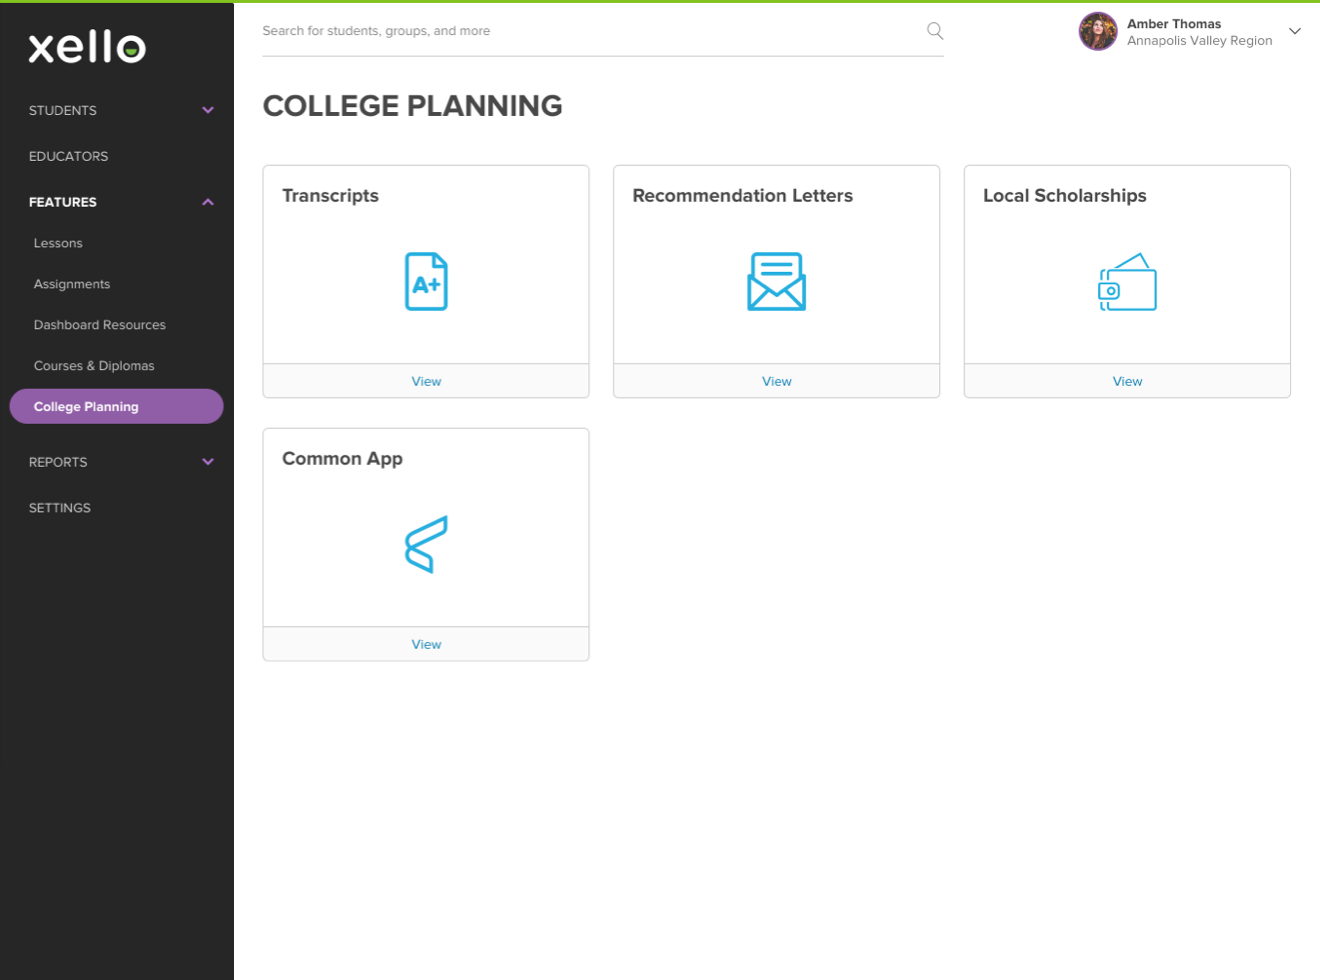 College Planning section in Educator Tools